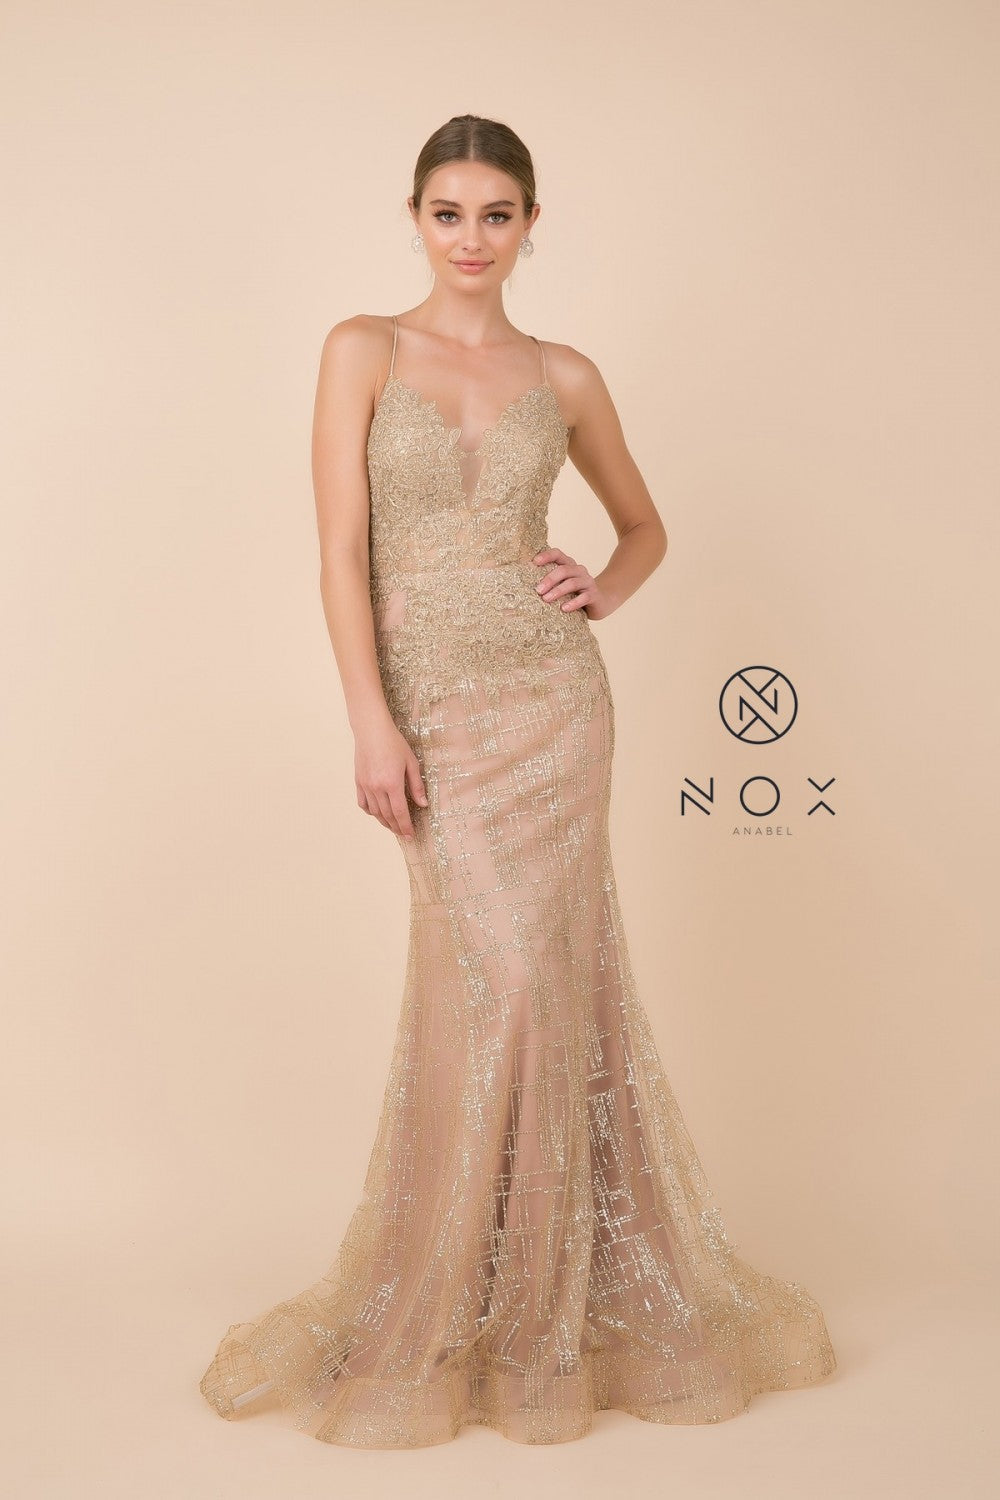 N R282 - Fit & Flare Prom Gown with Spaghetti Straps Lace Top Open Corset Back & Train